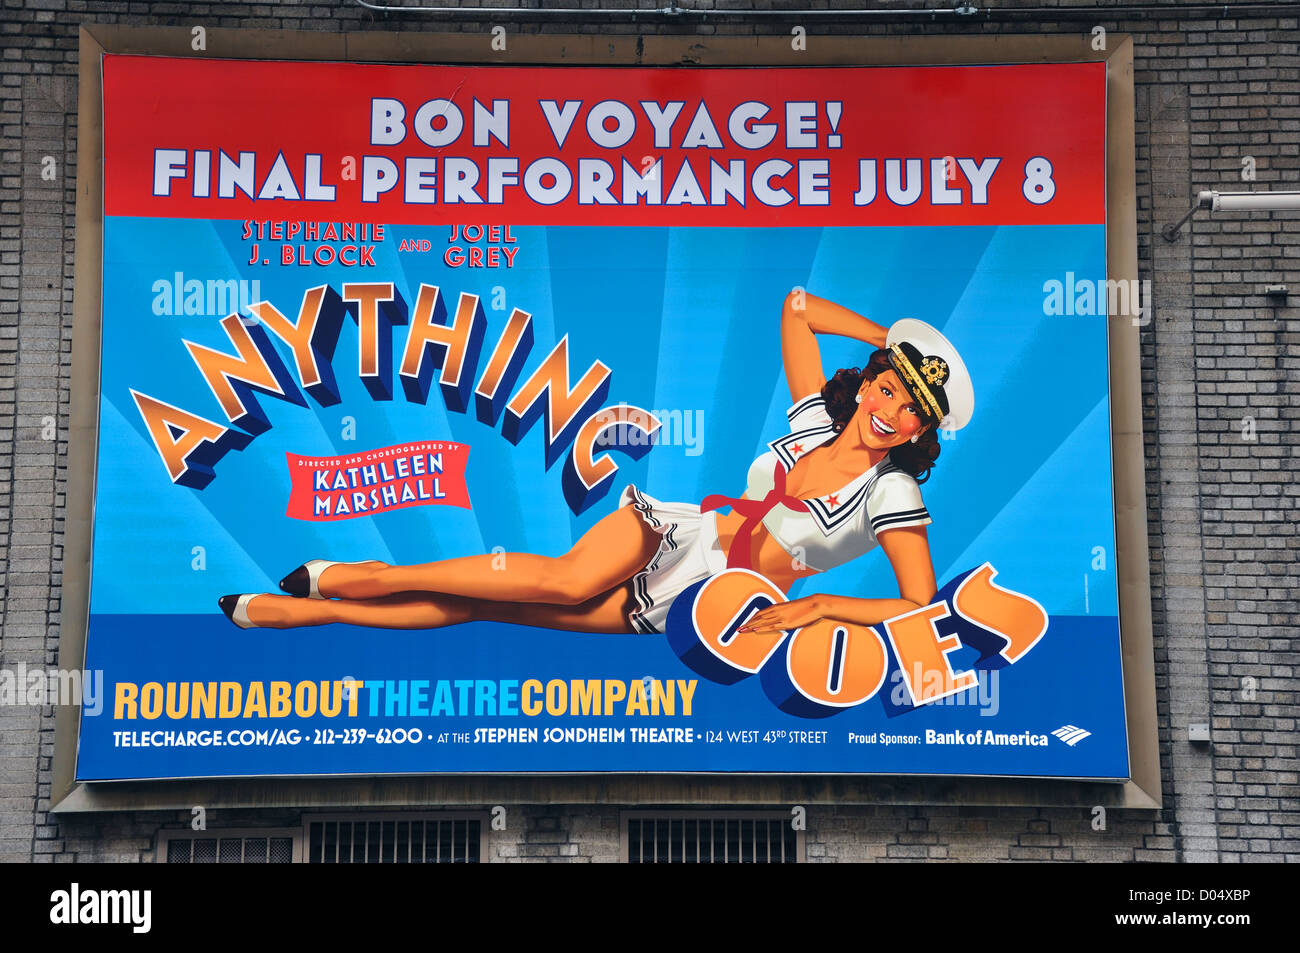 """Roundabout Theatre Company poster advertising """"Anything ..."""